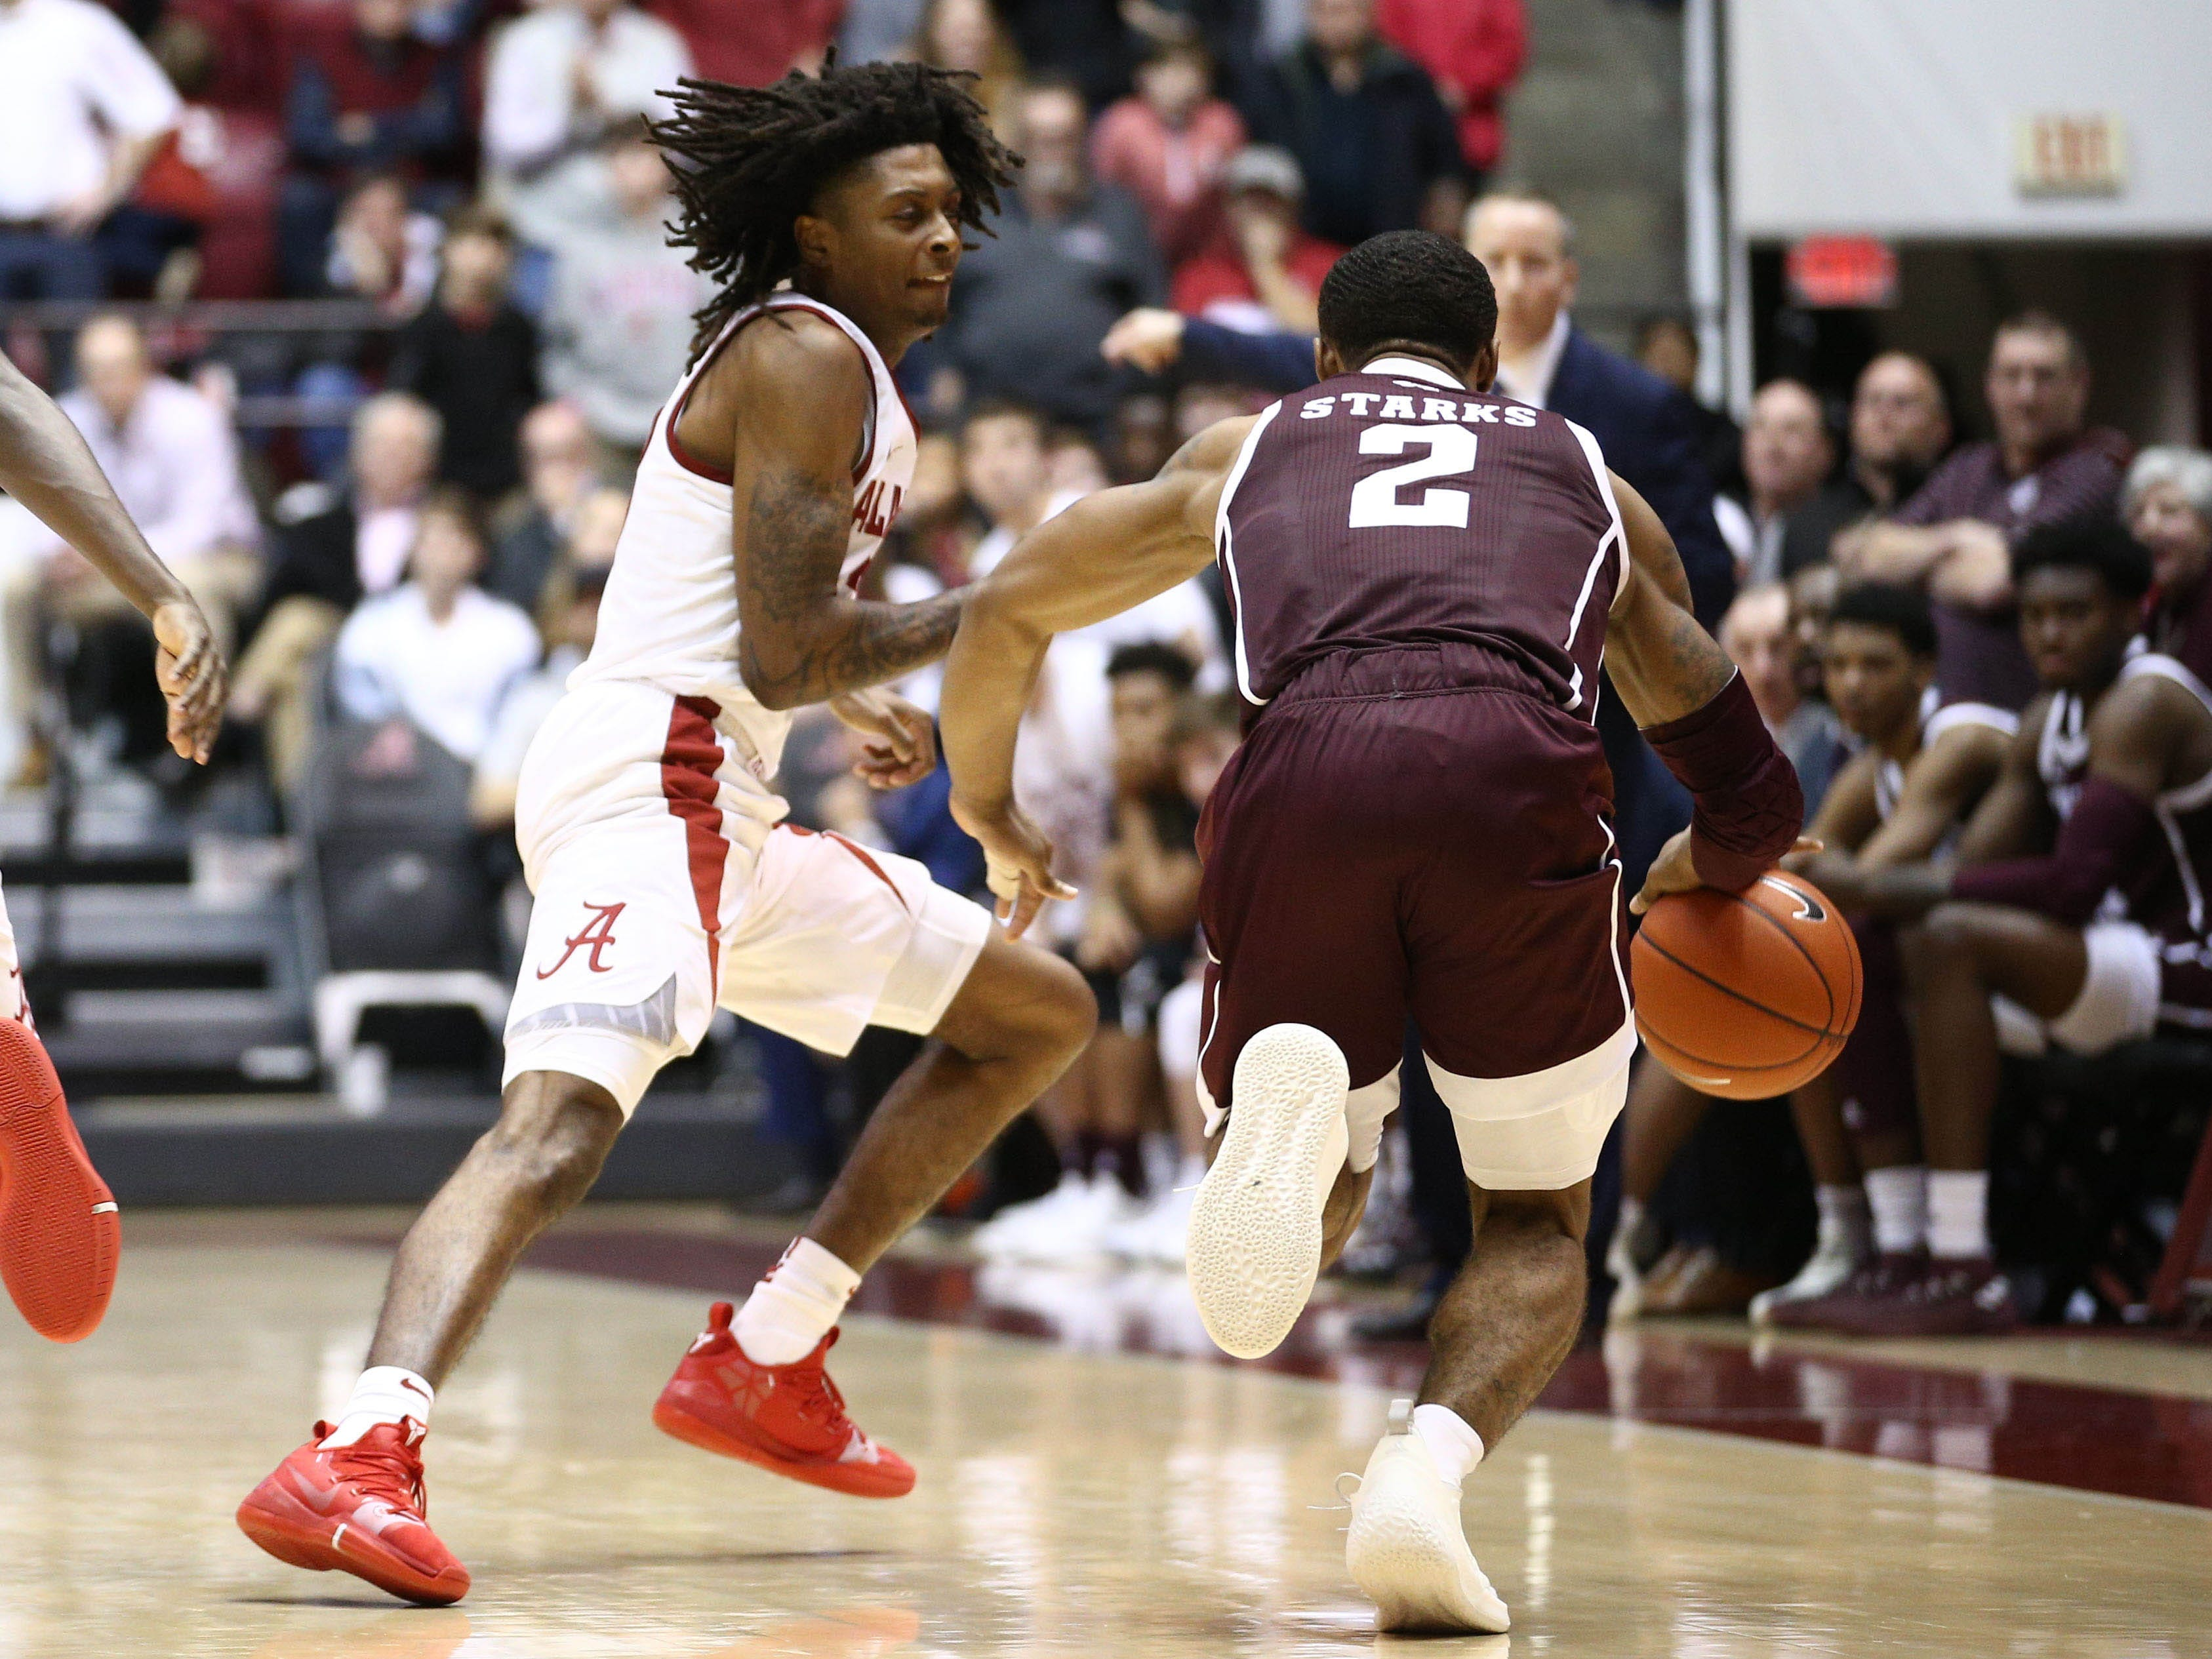 Jan 12, 2019; Tuscaloosa, AL, USA; Texas A&M Aggies guard TJ Starks (2) brings the ball down the court in the final seconds as Alabama Crimson Tide guard John Petty (23) defends during the second half at Coleman Coliseum. Mandatory Credit: Marvin Gentry-USA TODAY Sports